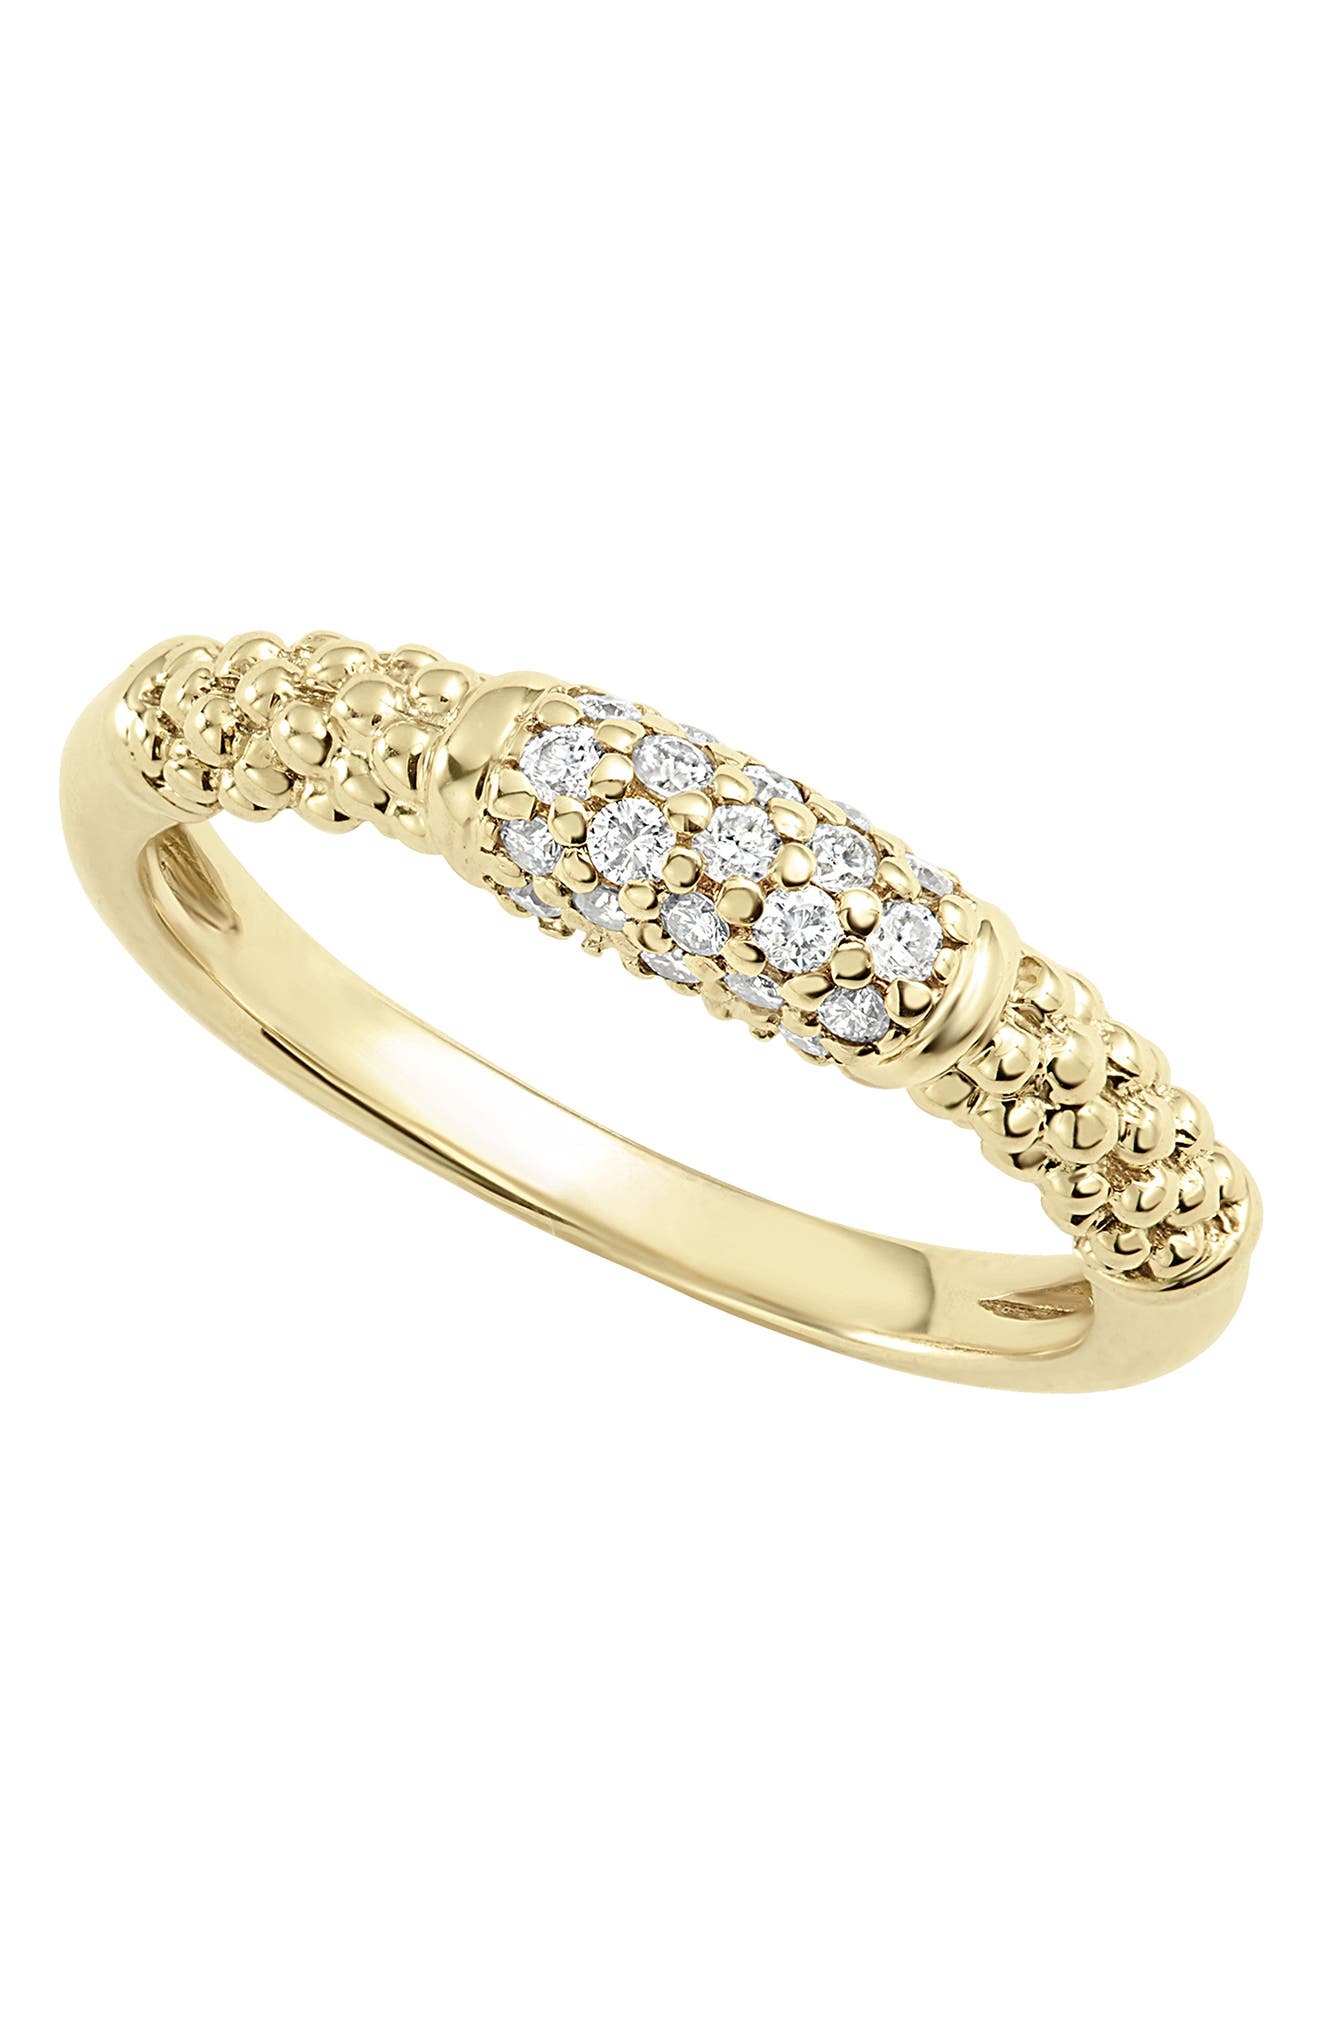 Caviar Diamond Ring,                             Alternate thumbnail 7, color,                             GOLD